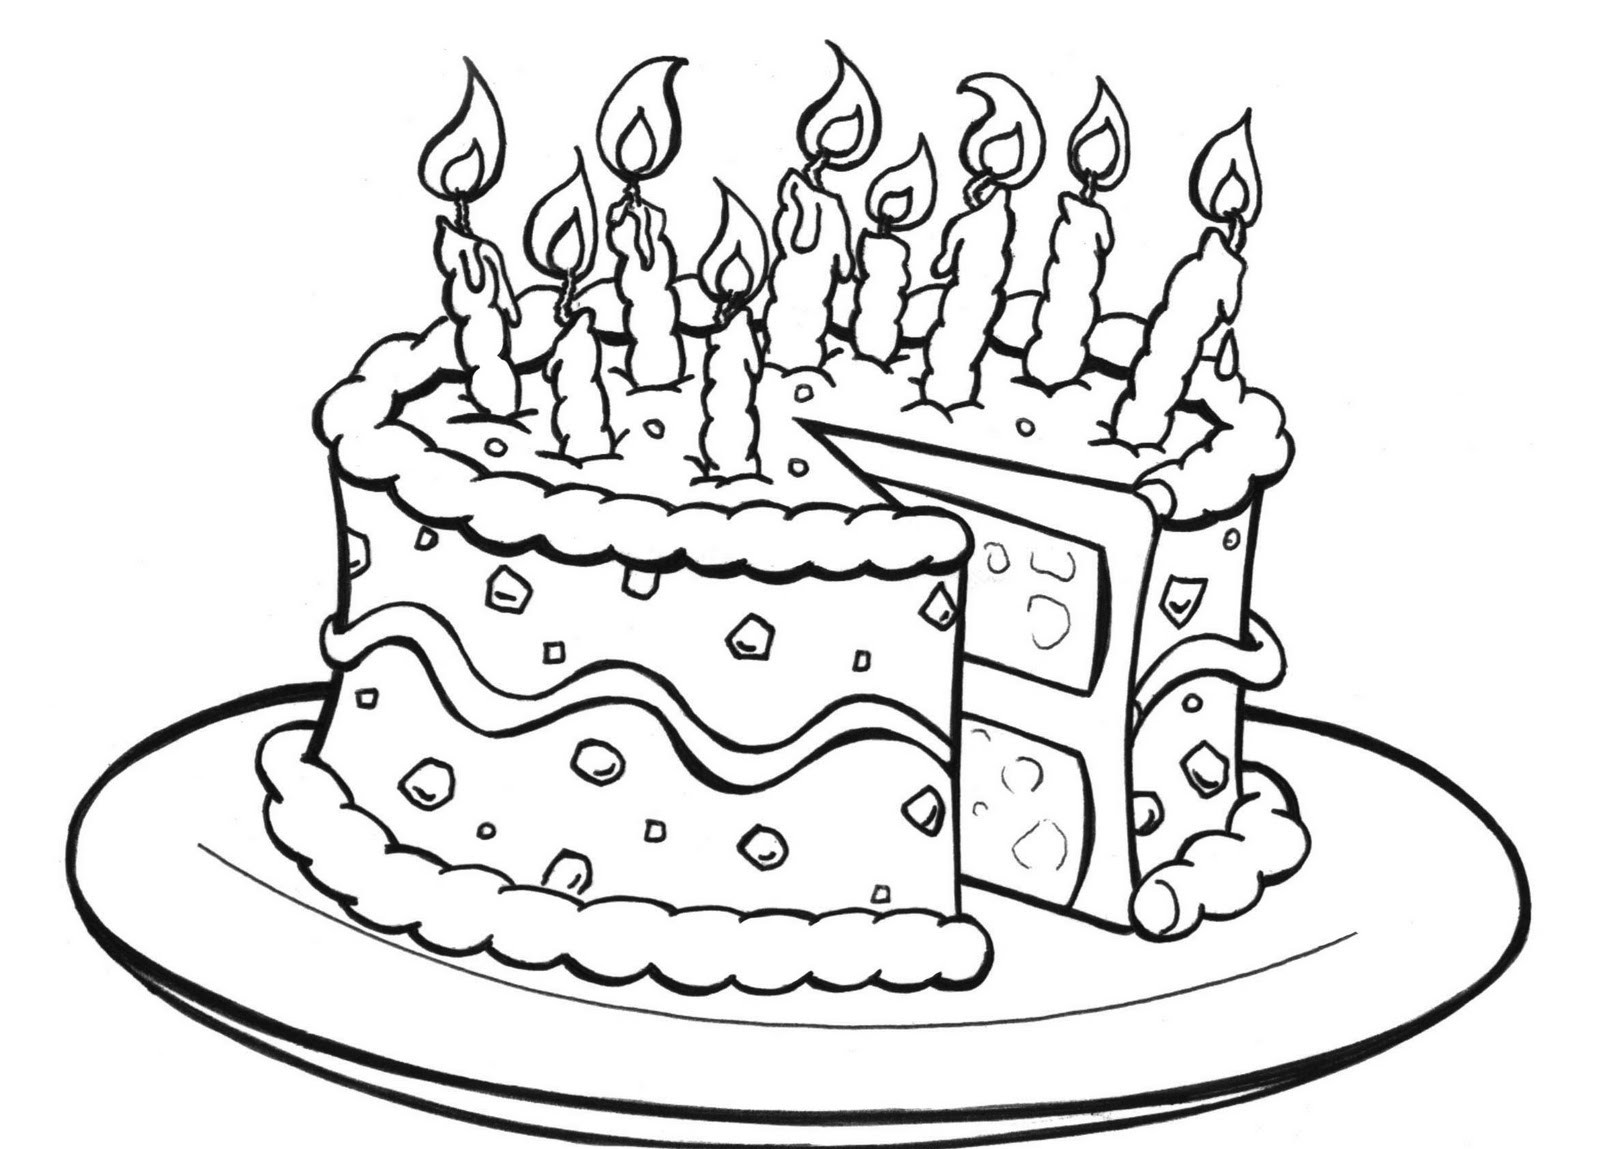 birthday party colouring sheets ; Drawing-Birthday-Cake-Coloring-Pages-28-In-Images-with-Birthday-Cake-Coloring-Pages